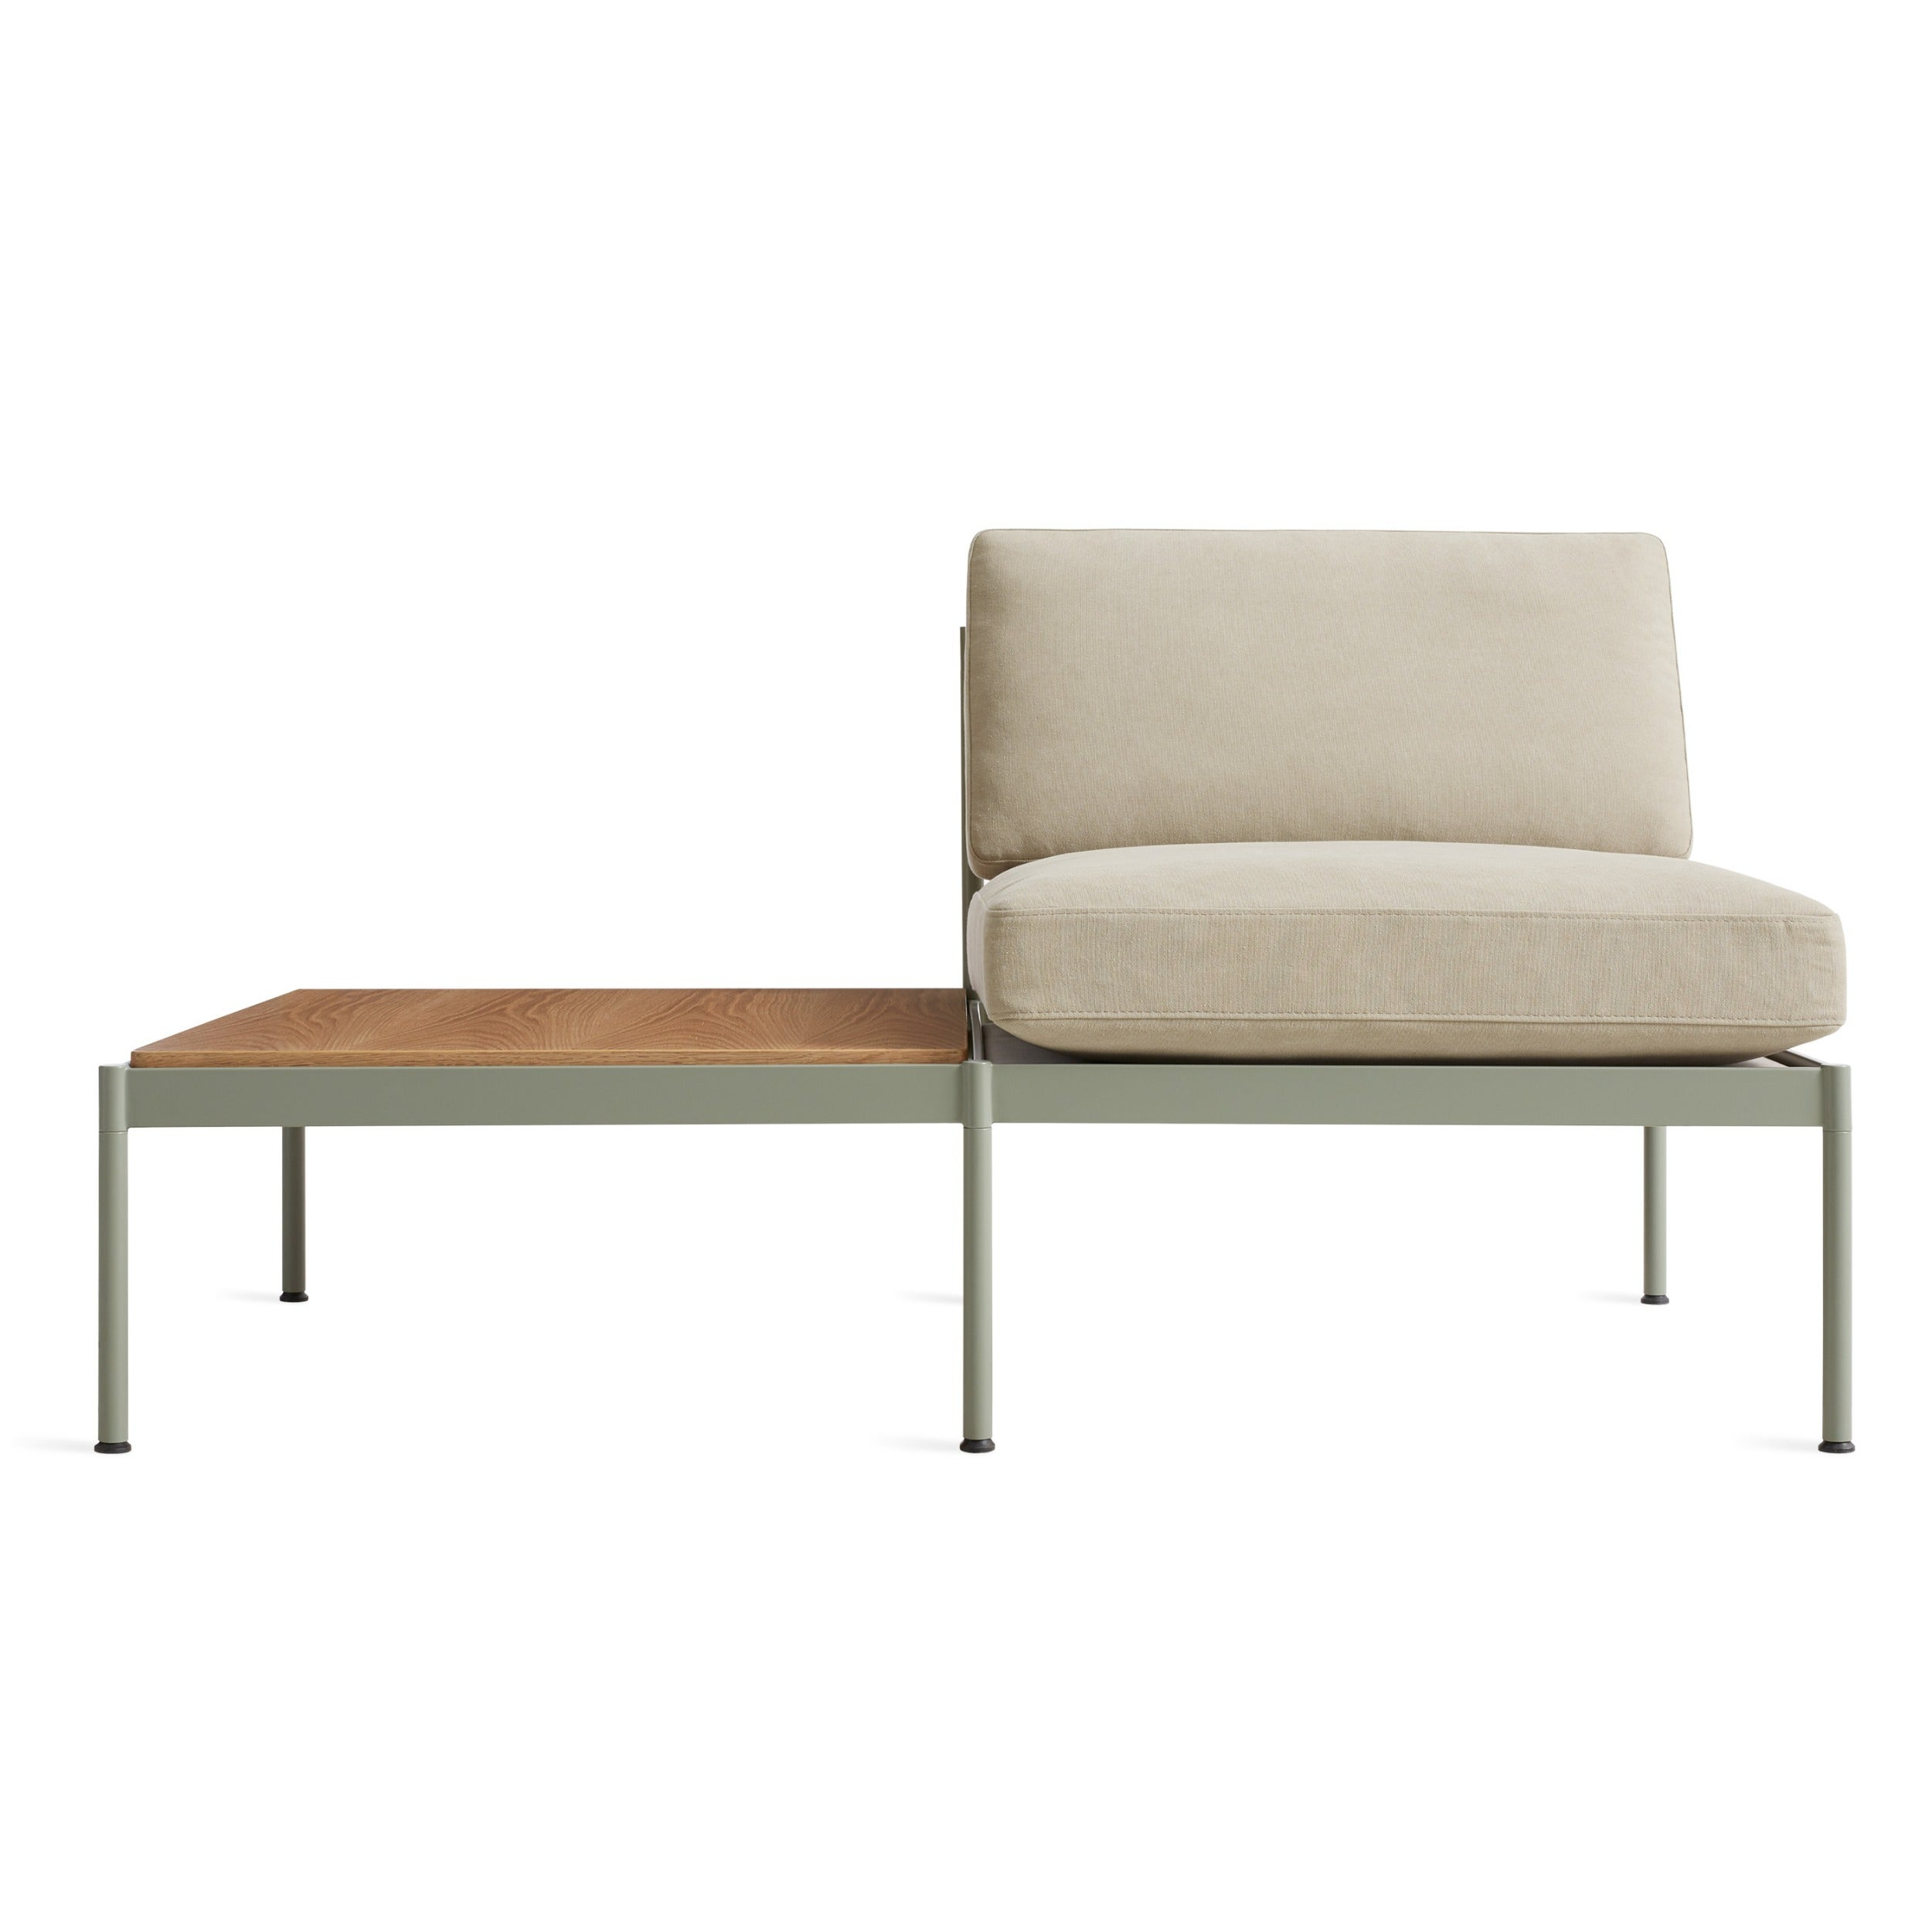 Chassis Lounge Chair with Table